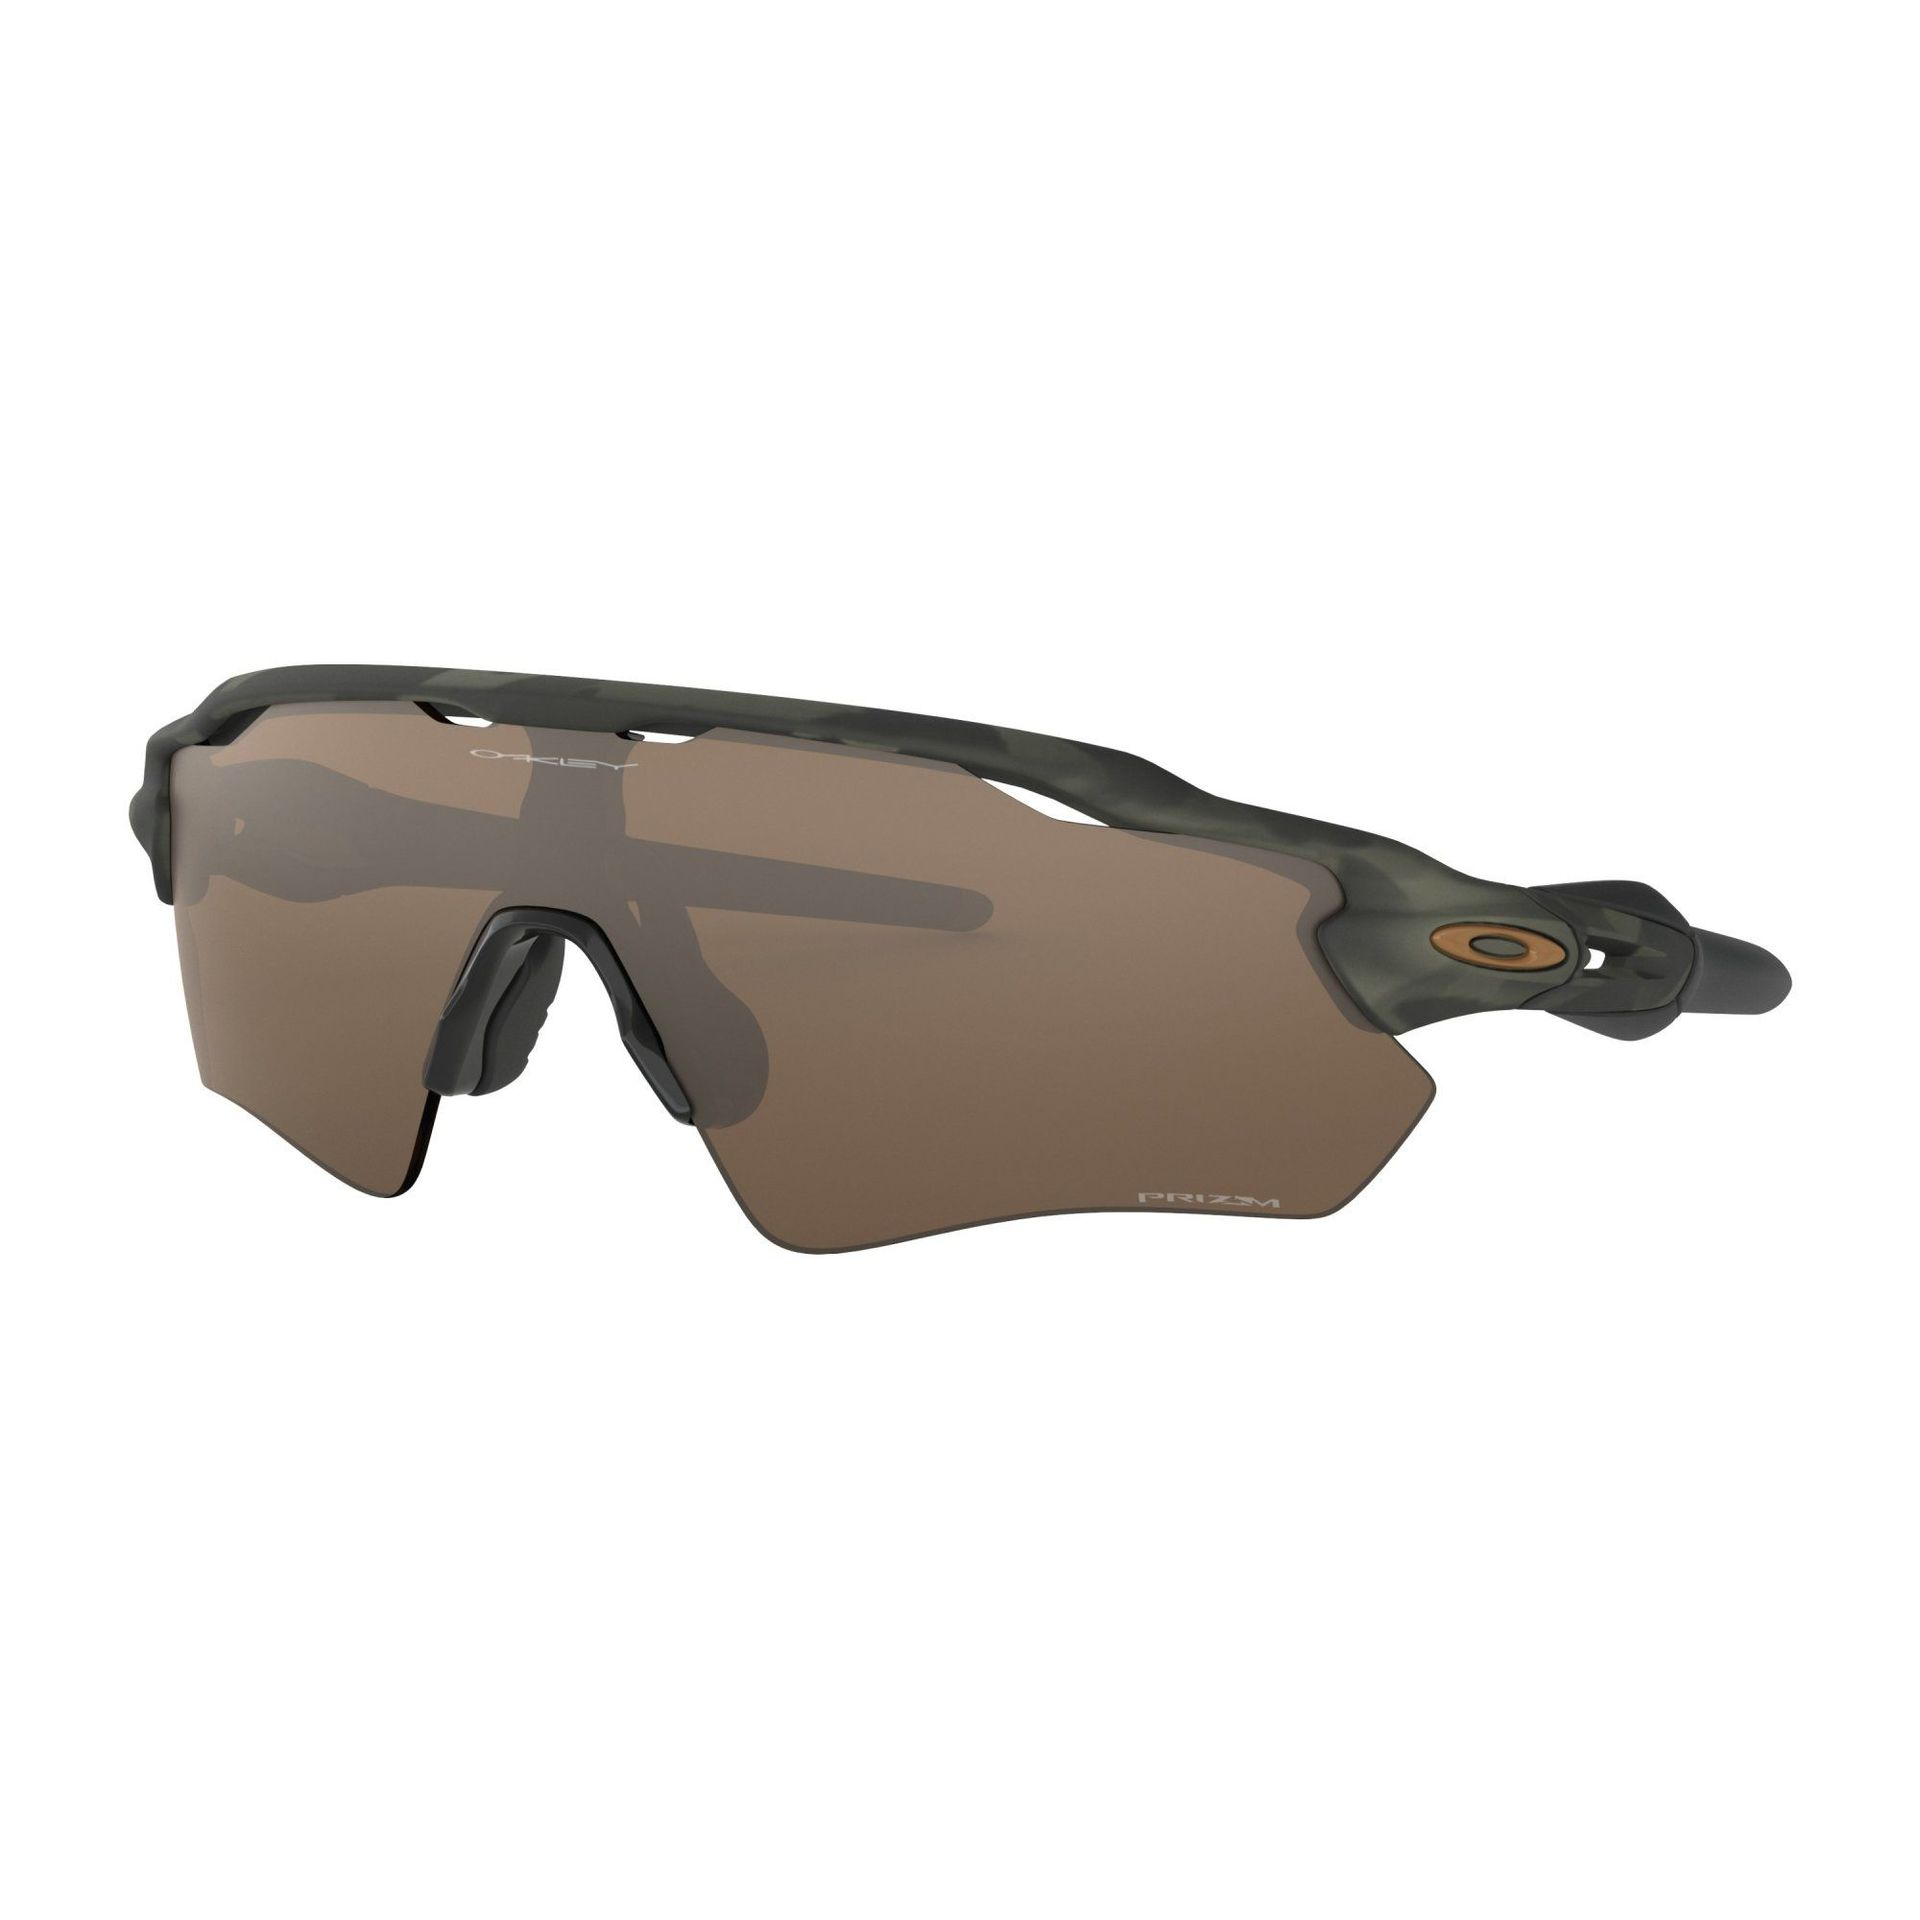 OKULARY OAKLEY RADAR EV PATH ILVE CAMO|PRIZM TUNGSTEN 1